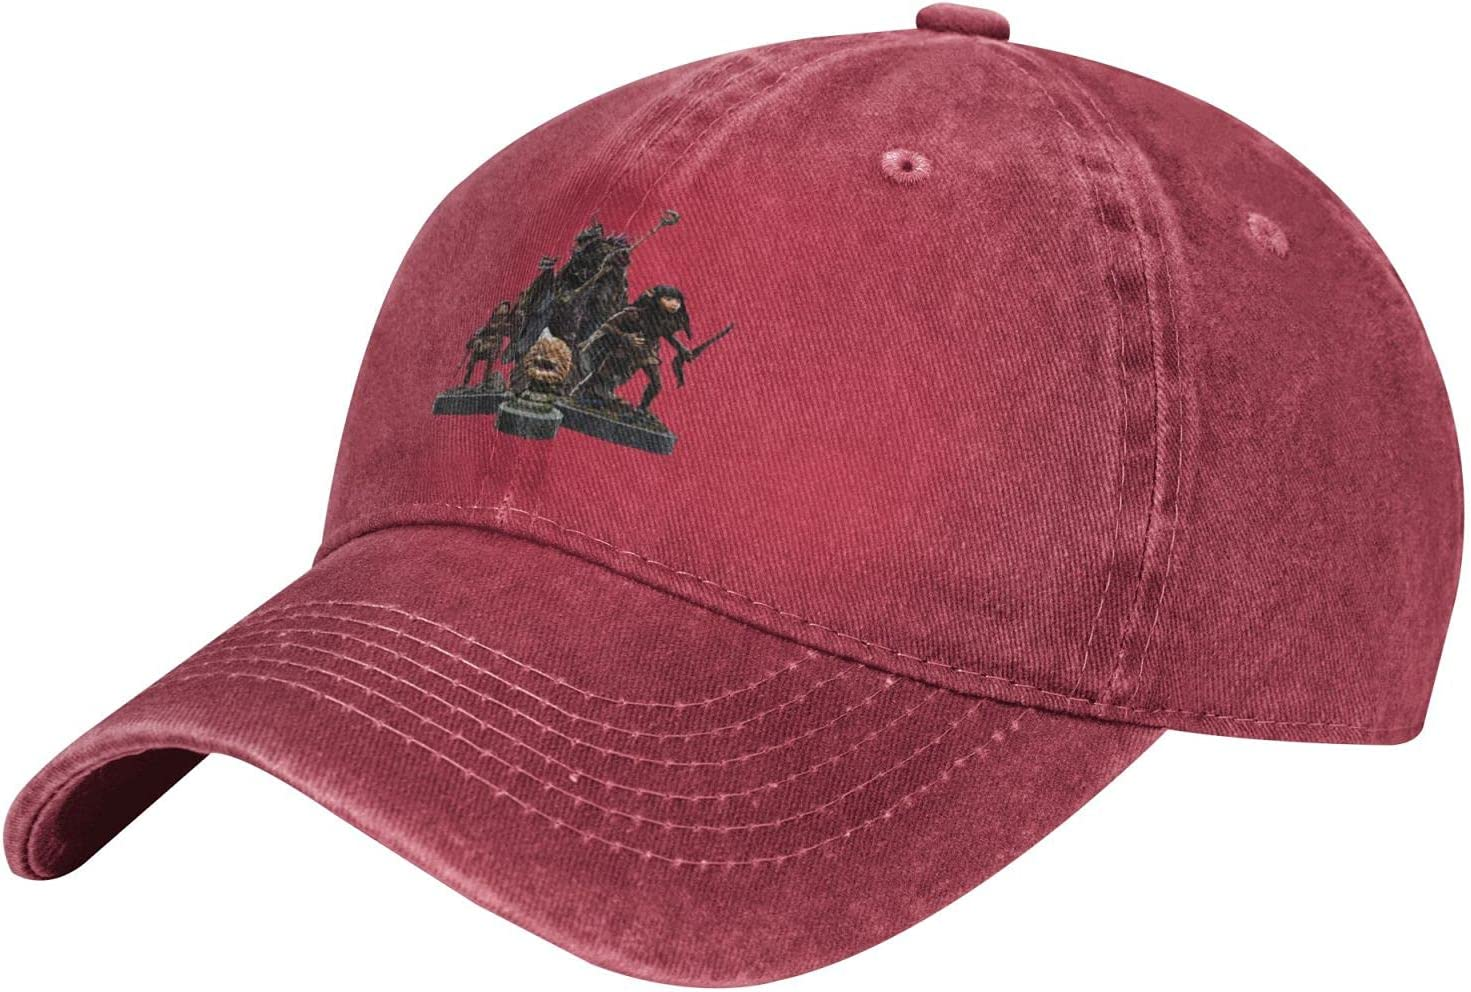 Pcaocmro The Dark Crystal Cowboy Hat Unisex Adjustable Hat Circumference Size Pure Cotton Denim Wash Water Outdoor